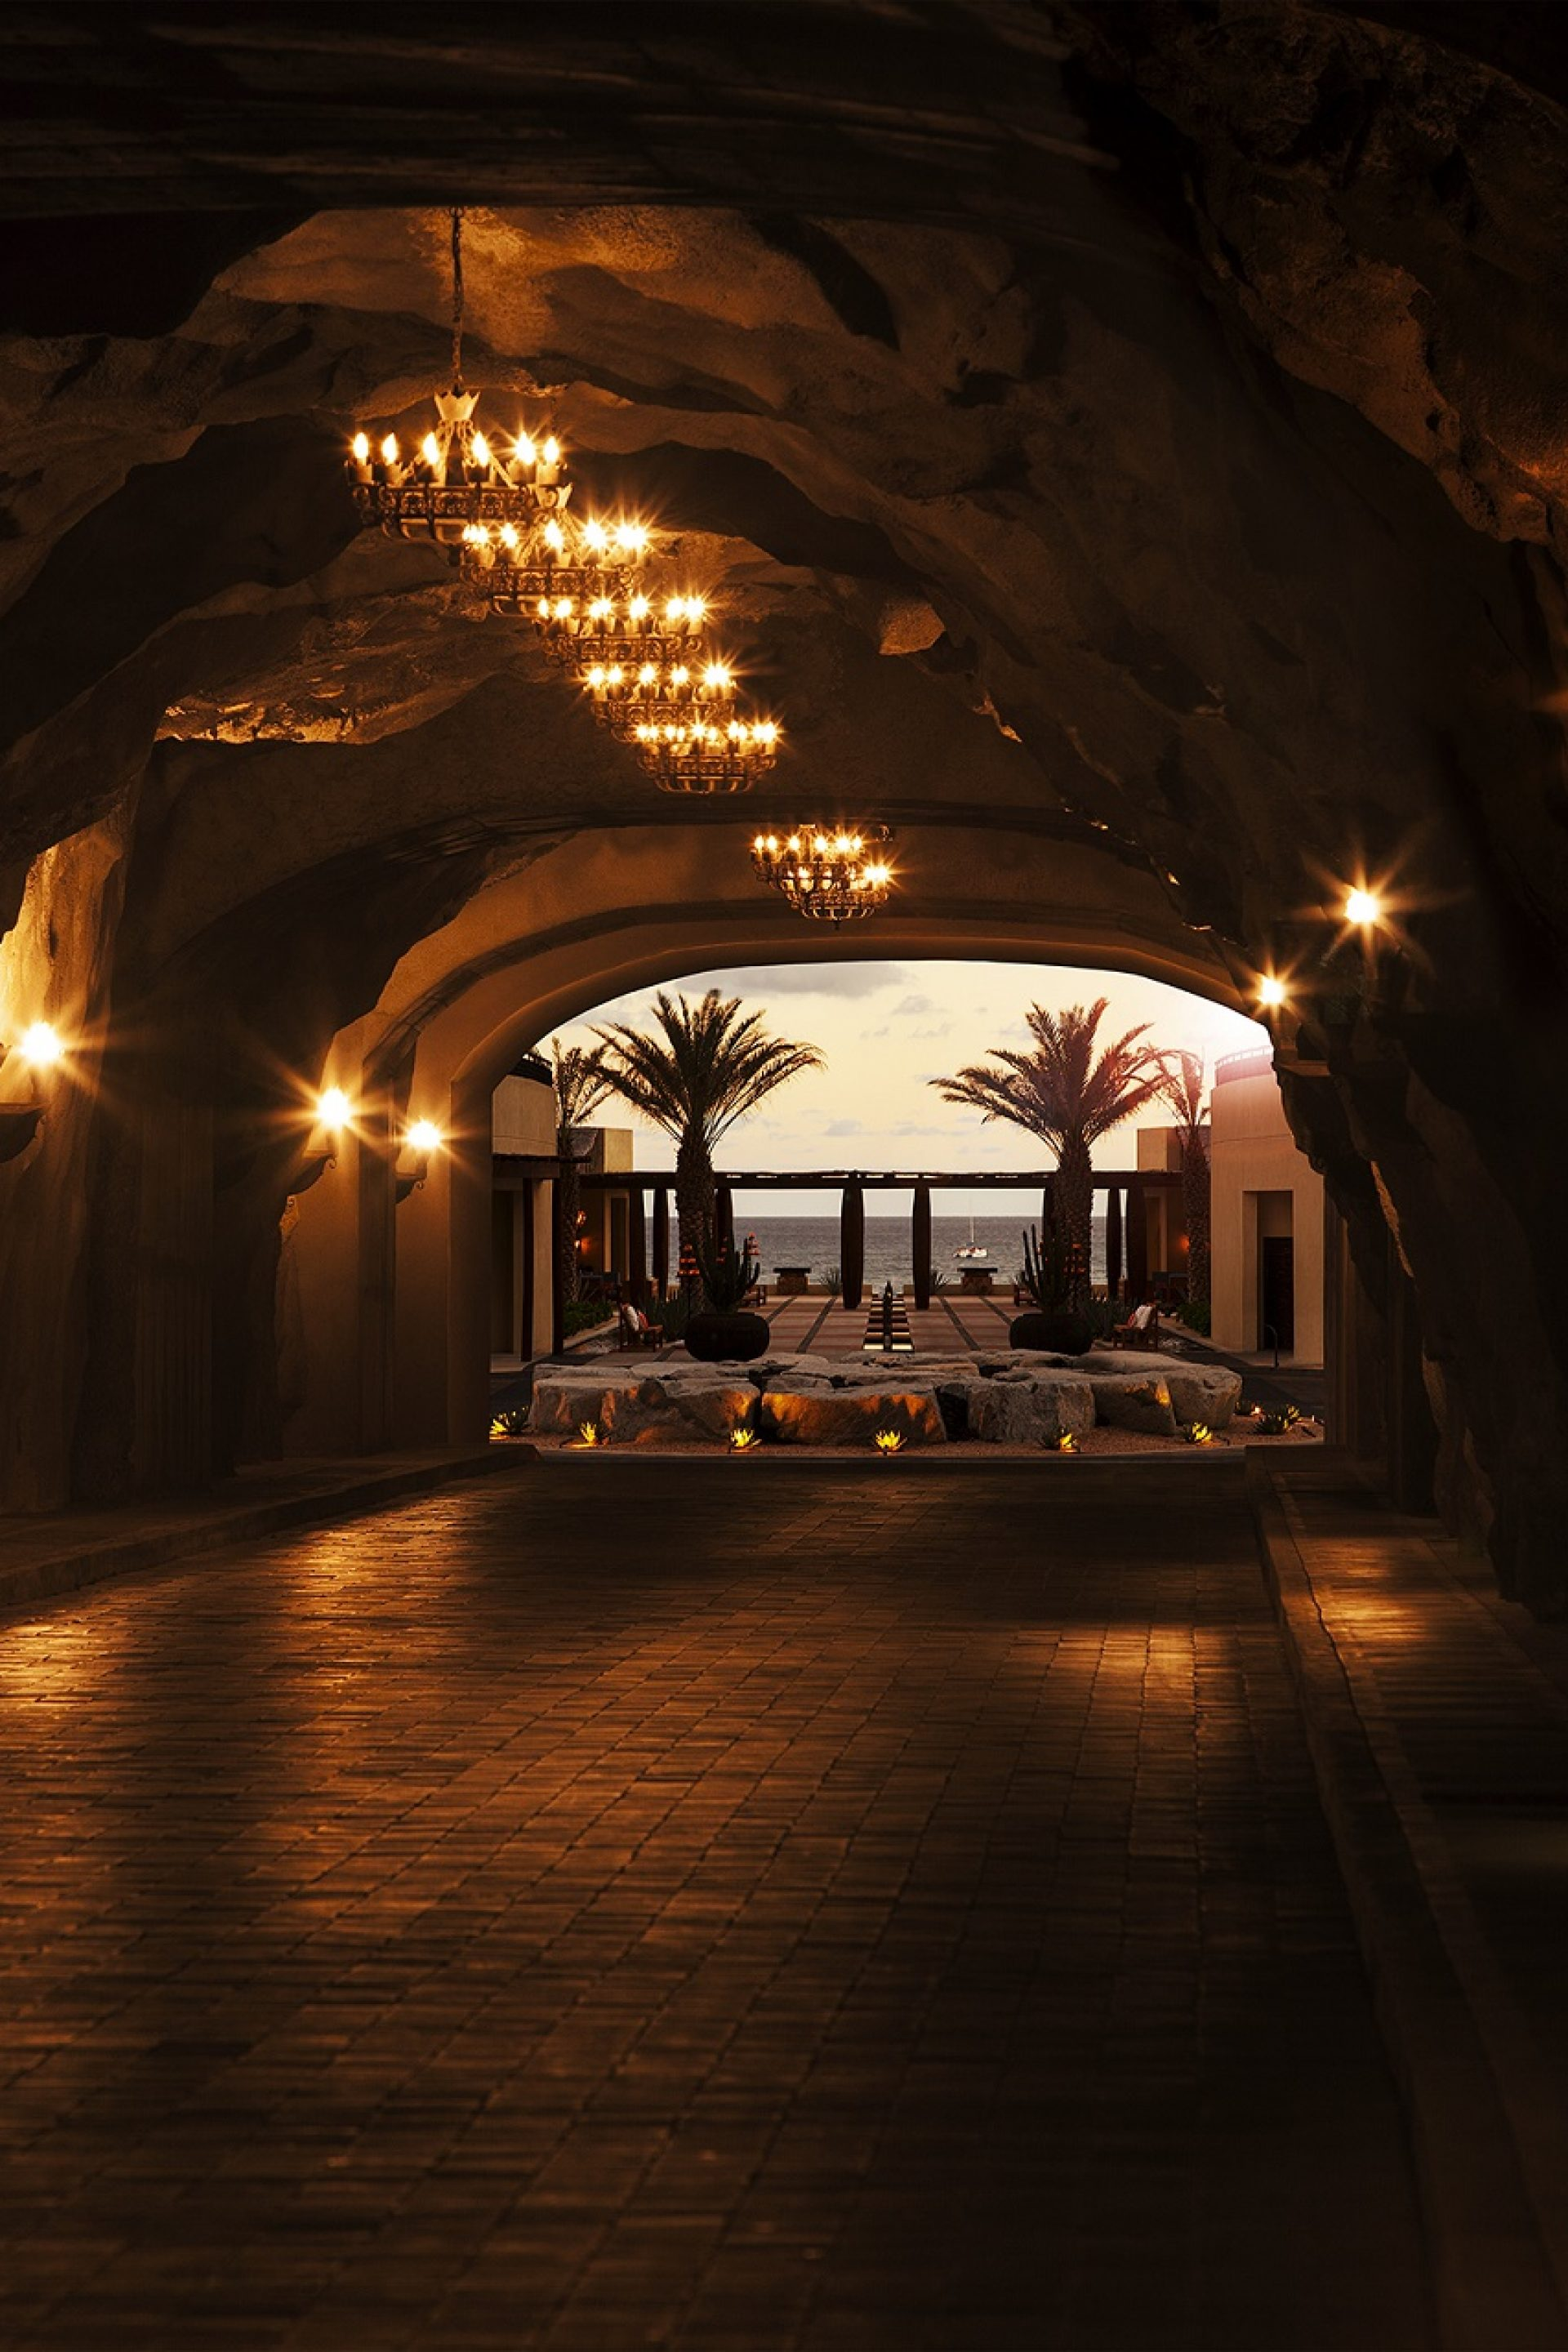 The Famous Tunnel at The Resort at Pedregal